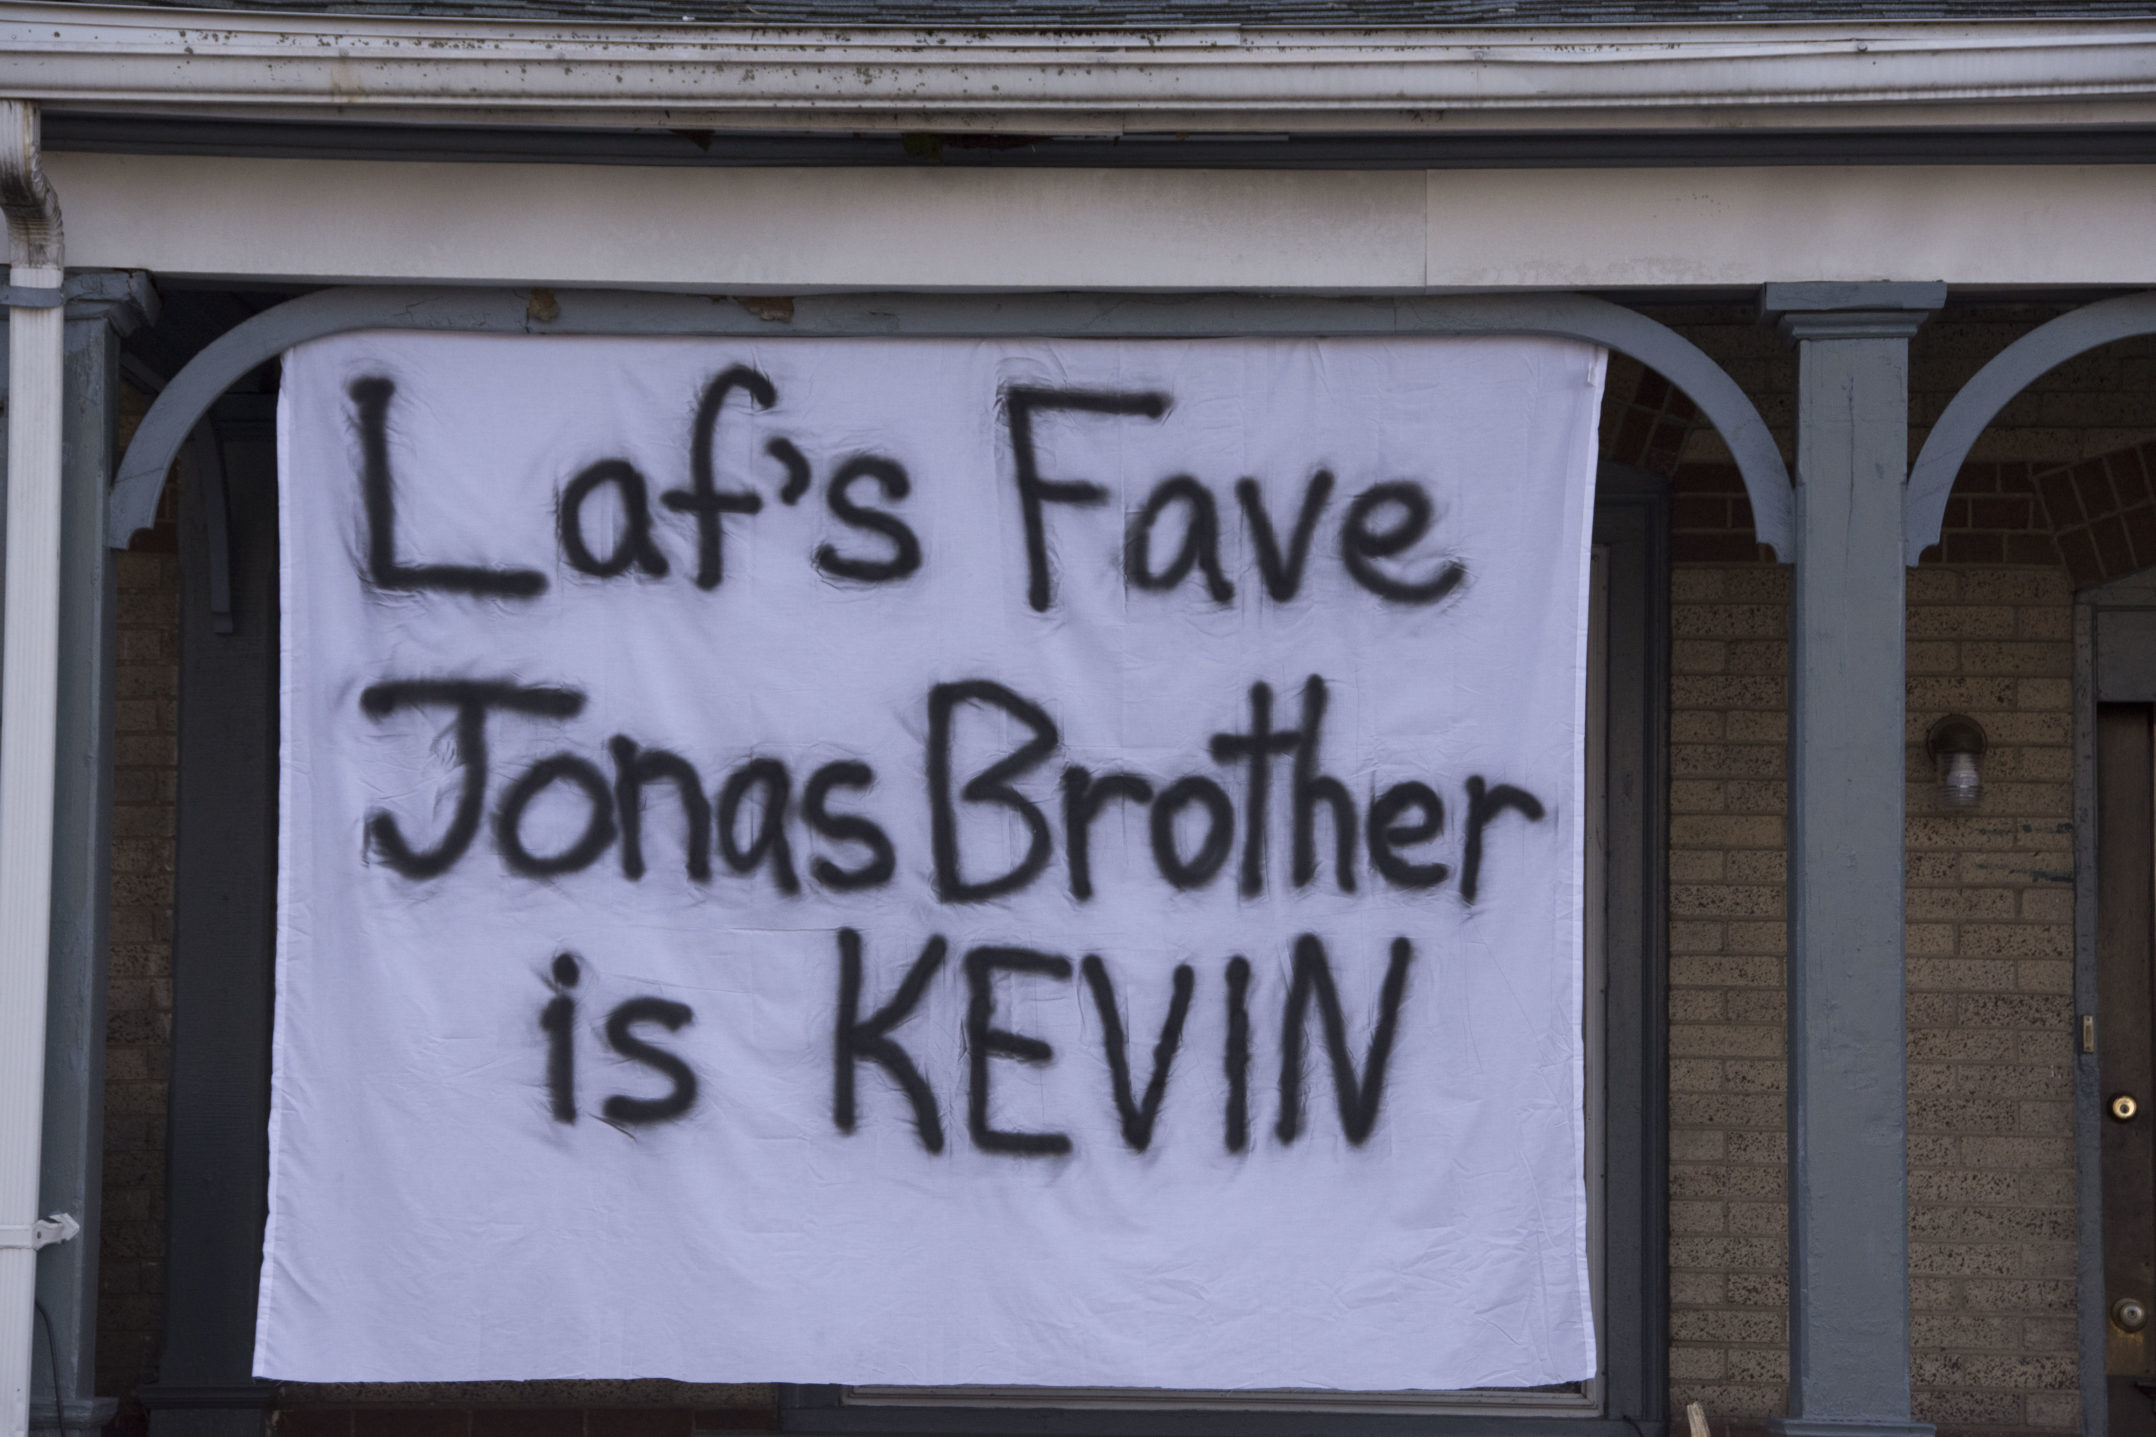 "A banner reading ""Laf's fave Jonas Brother is Kevin"" hangs from a house on Birkel Avenue on Wednesday, Nov. 15, 2017. The banner is referencing the music trio The Jonas Brothers. (Annie Henry/B&W Staff)"